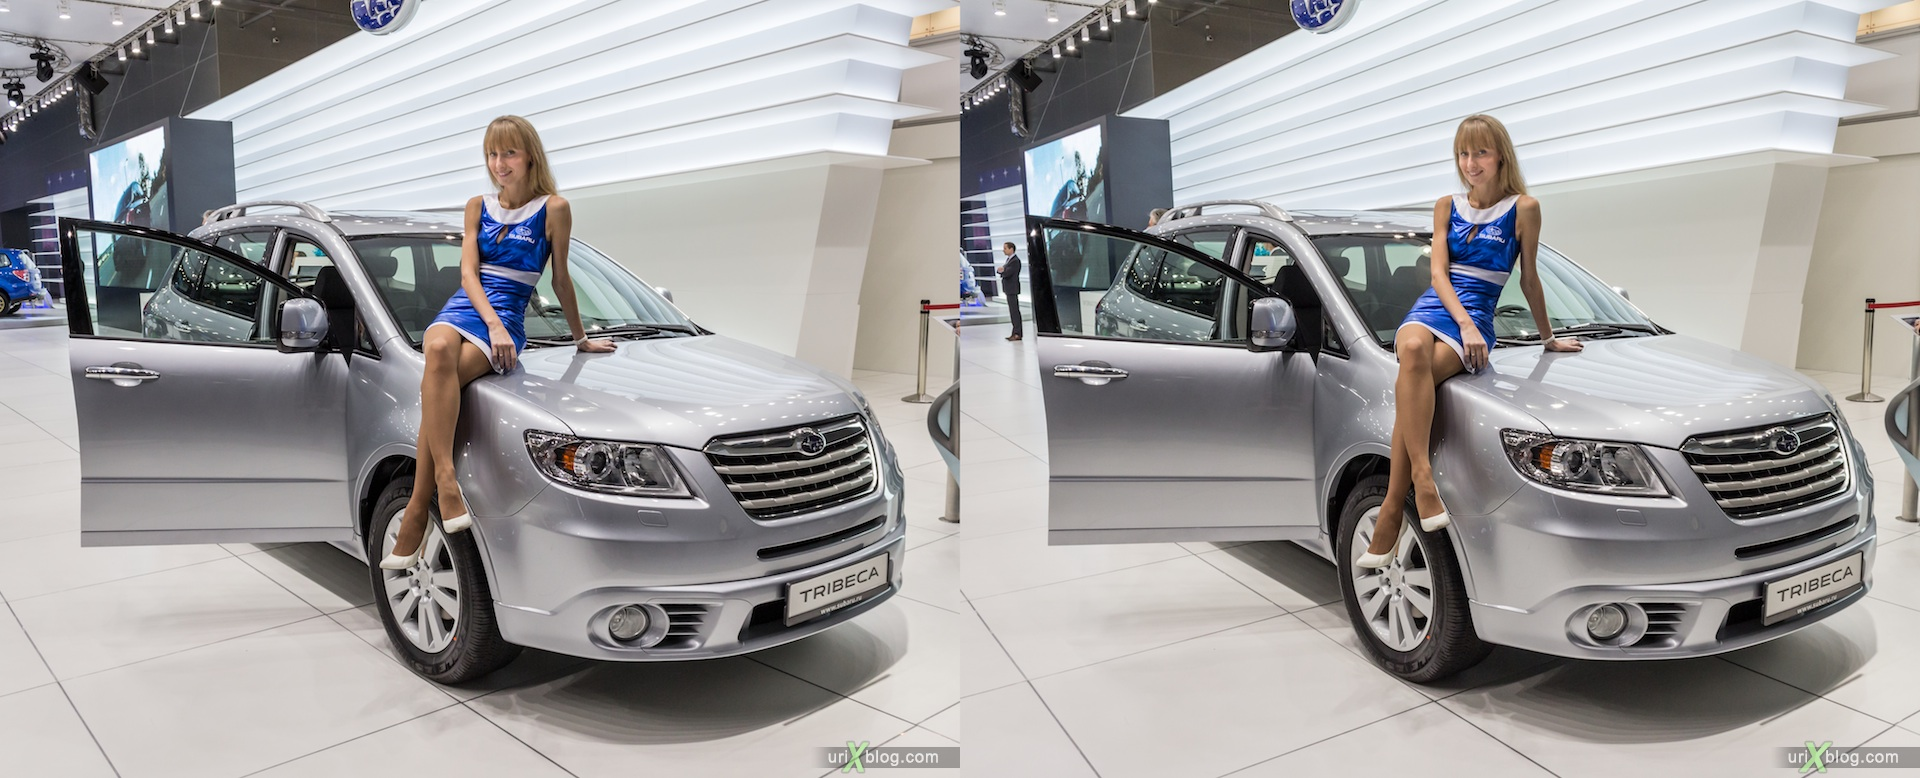 2012, Subaru Tribeca, девушка, модель, girl, model, Moscow International Automobile Salon, auto show, 3D, stereo pair, cross-eyed, crossview